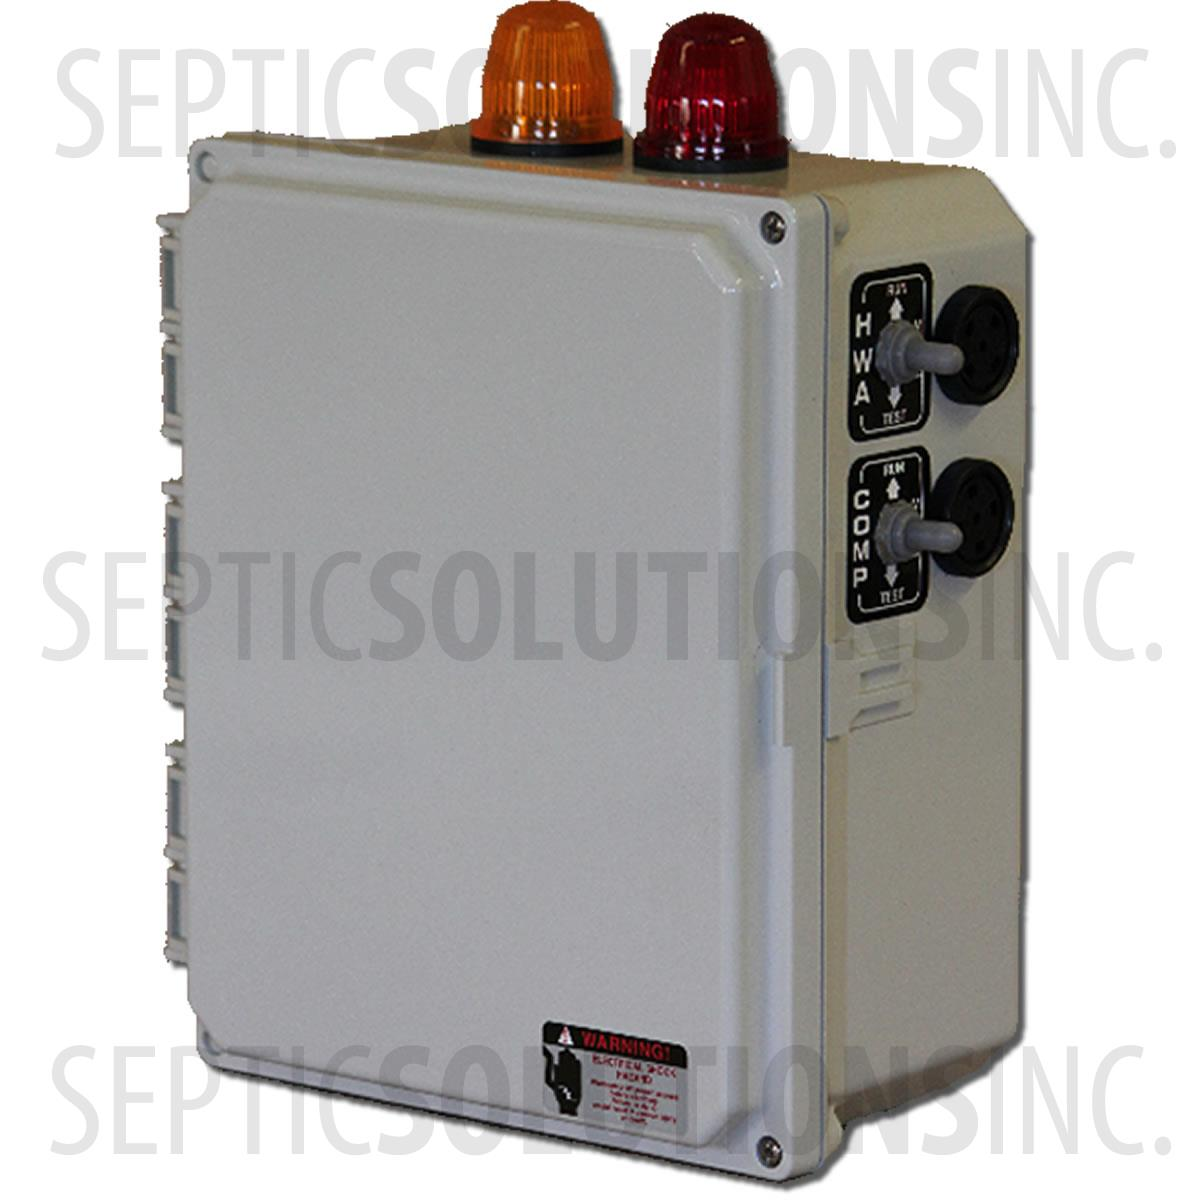 50B006_2?w=300 aerobic septic system control panels and alarms free shipping clearstream septic system wiring diagram at crackthecode.co